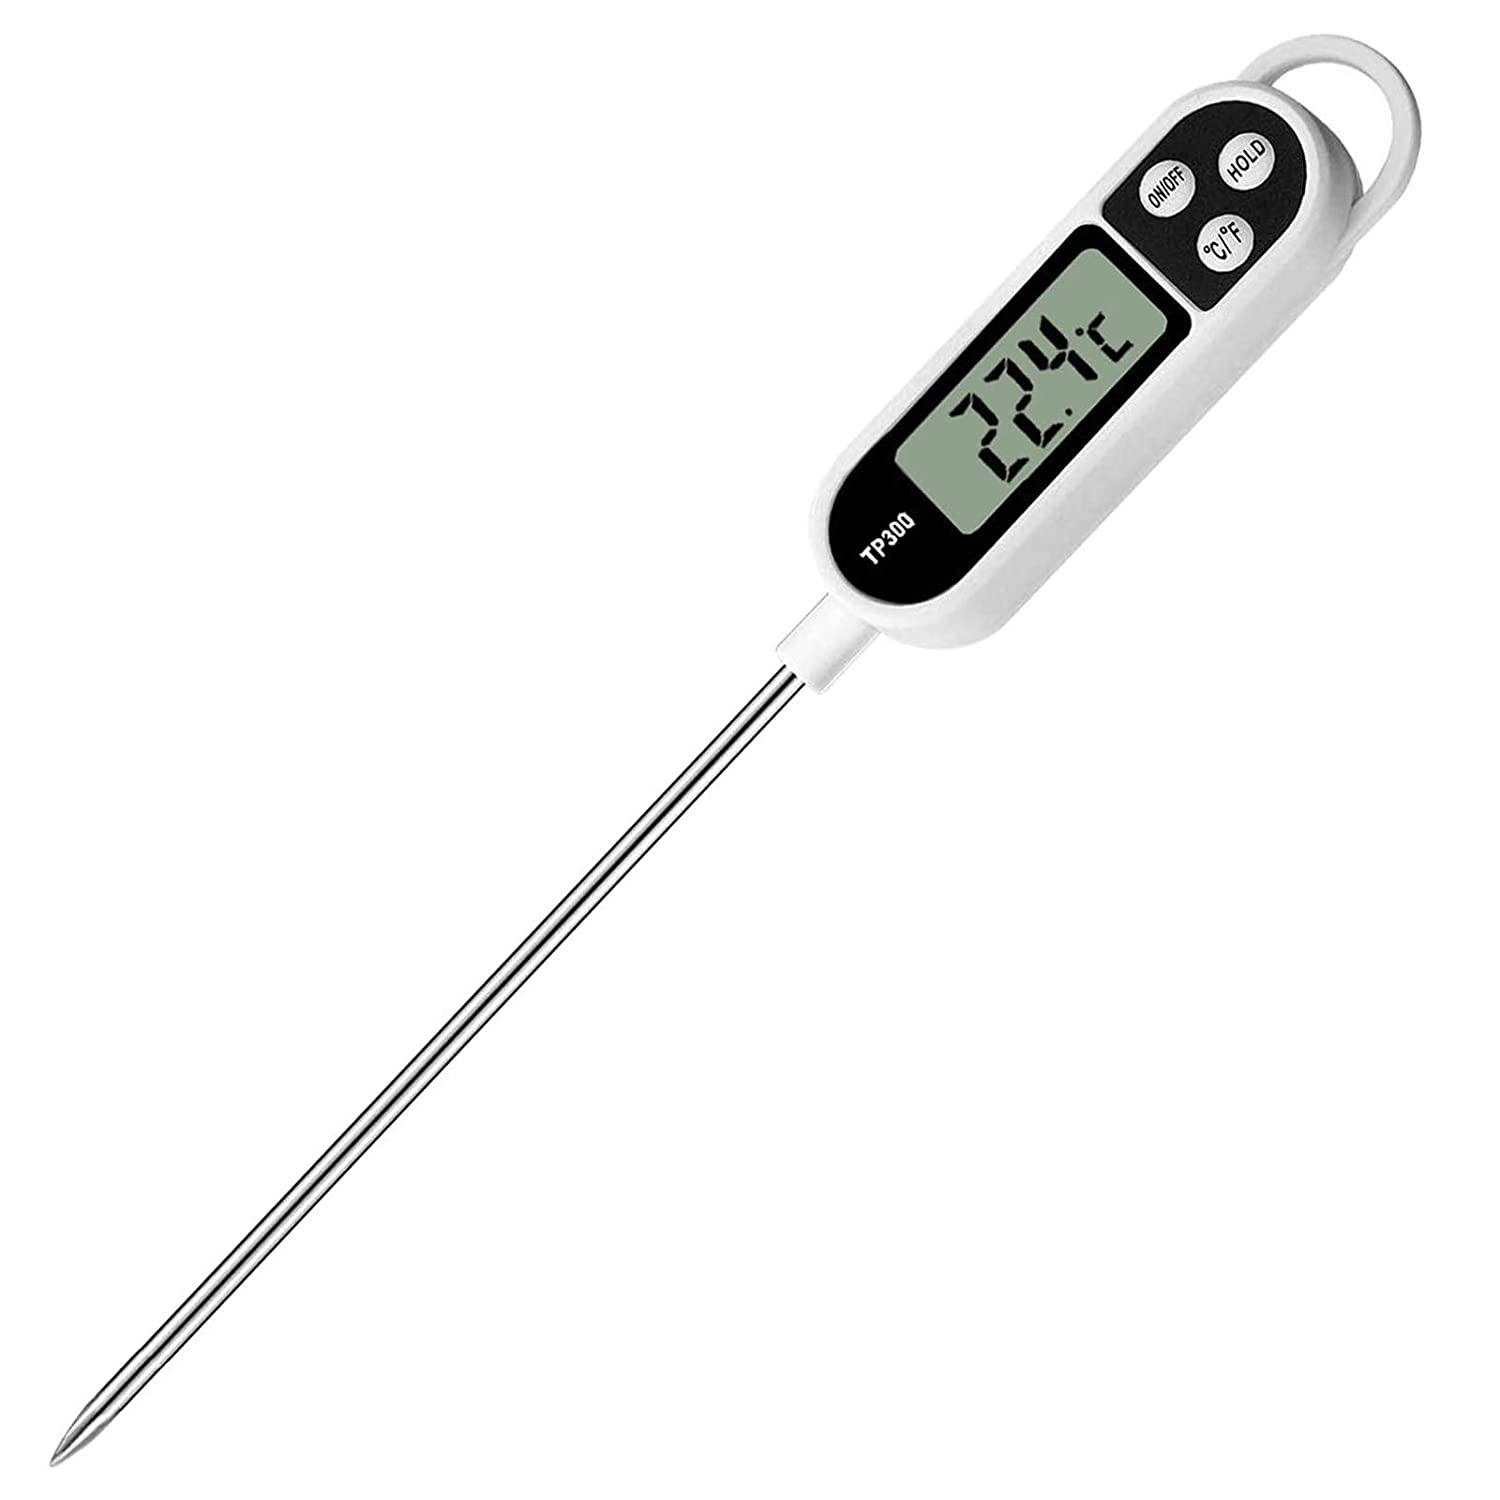 Instant Read Meat Thermometer, Digital Food Thermometer Food Cooking Thermometer for Grilling Candy BBQ Smoker Grill Kitchen Oil, Milk, Bath Water, Deep Fry Thermometer